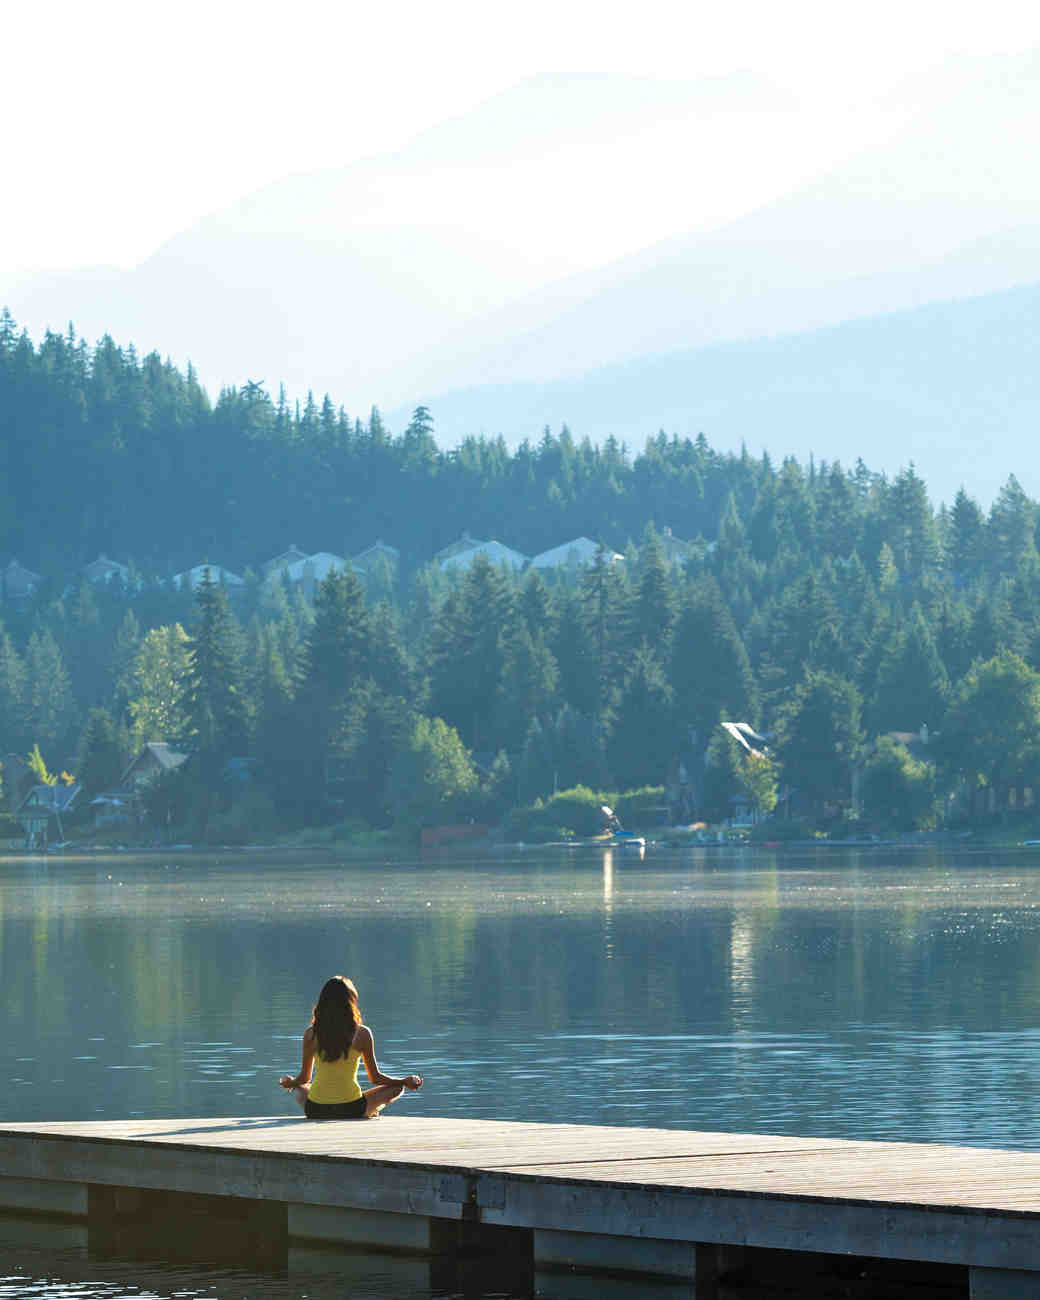 m-expert-advice-yoga-by-lake-gettyimages-484393332-s112893.jpg